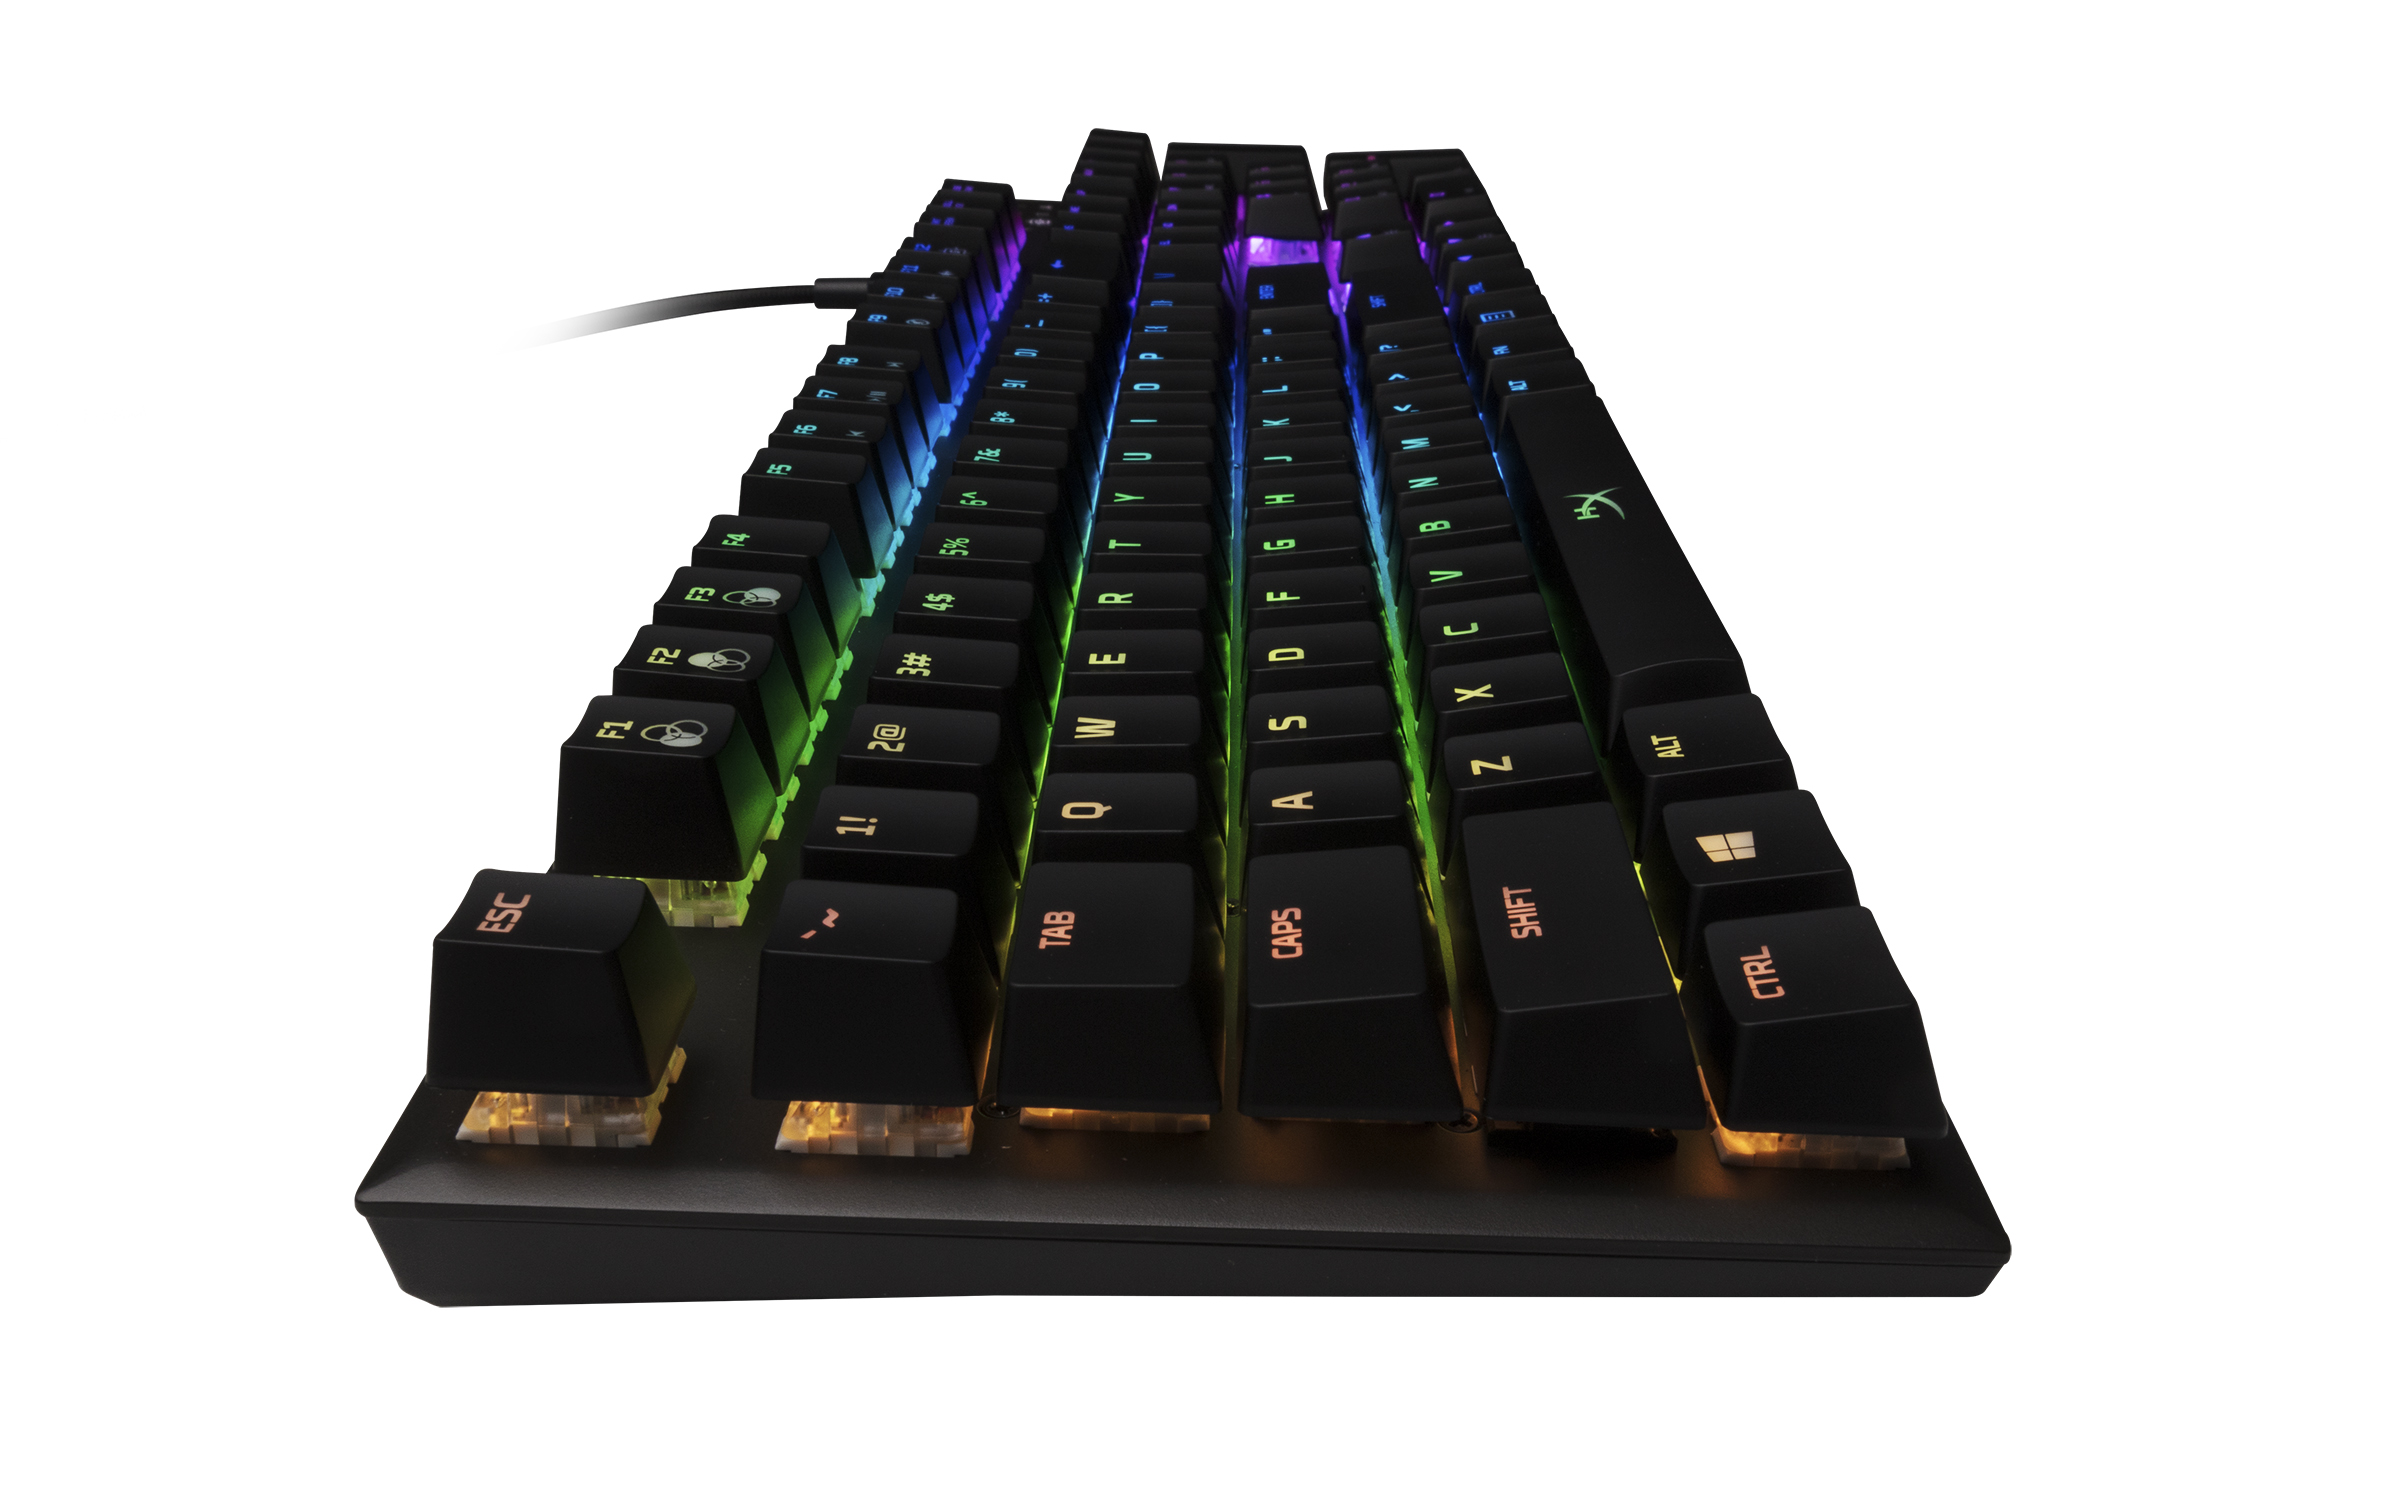 The HyperX Alloy FPS RGB Mechanical Gaming Keyboard looks and feels sleek.